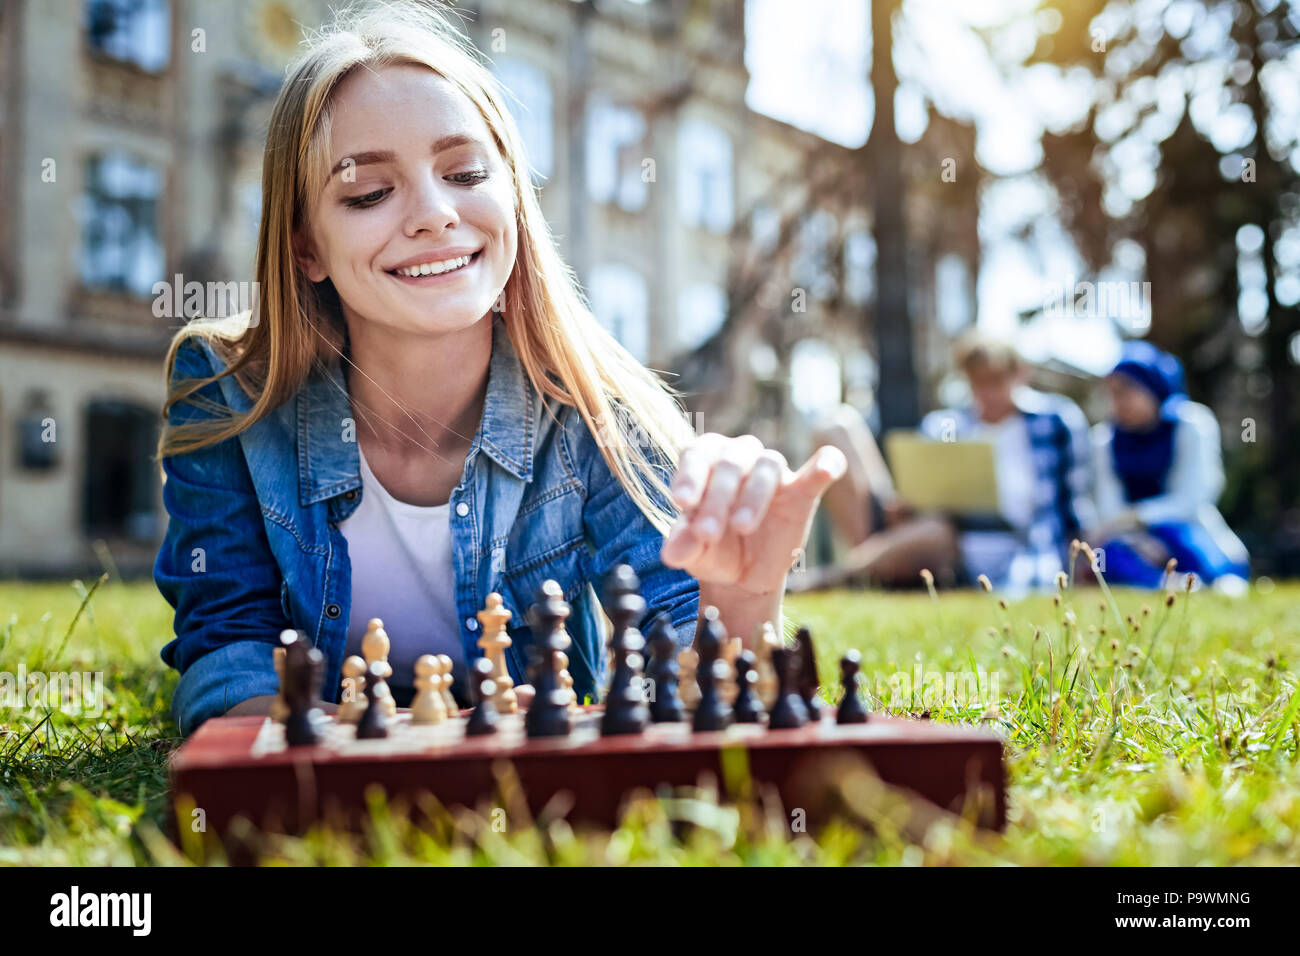 Jeune femme intelligente smiling while playing chess Photo Stock